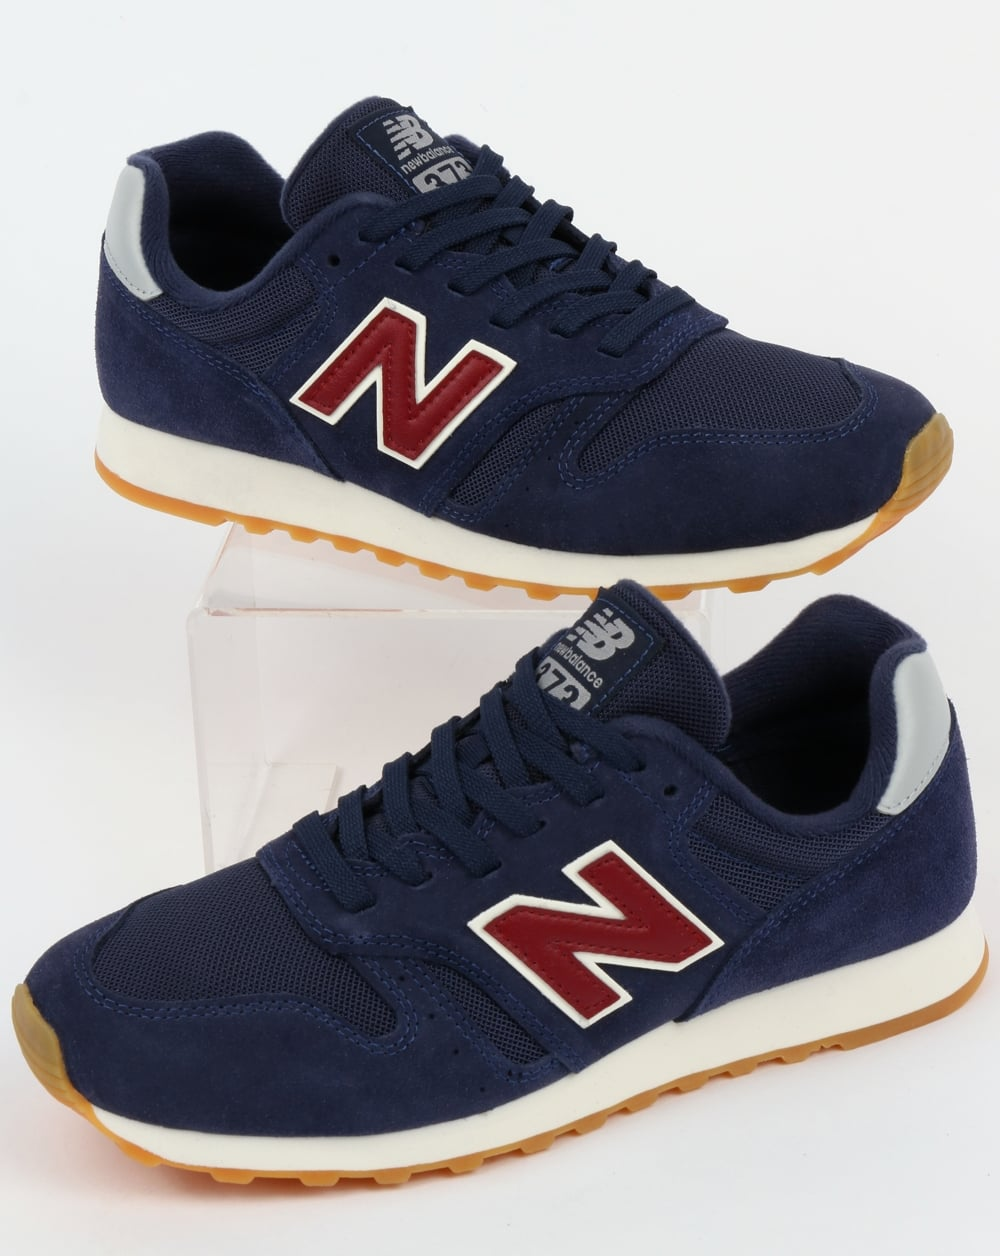 NEW BALANCE 373 Trainers in Navy & Red classic retro